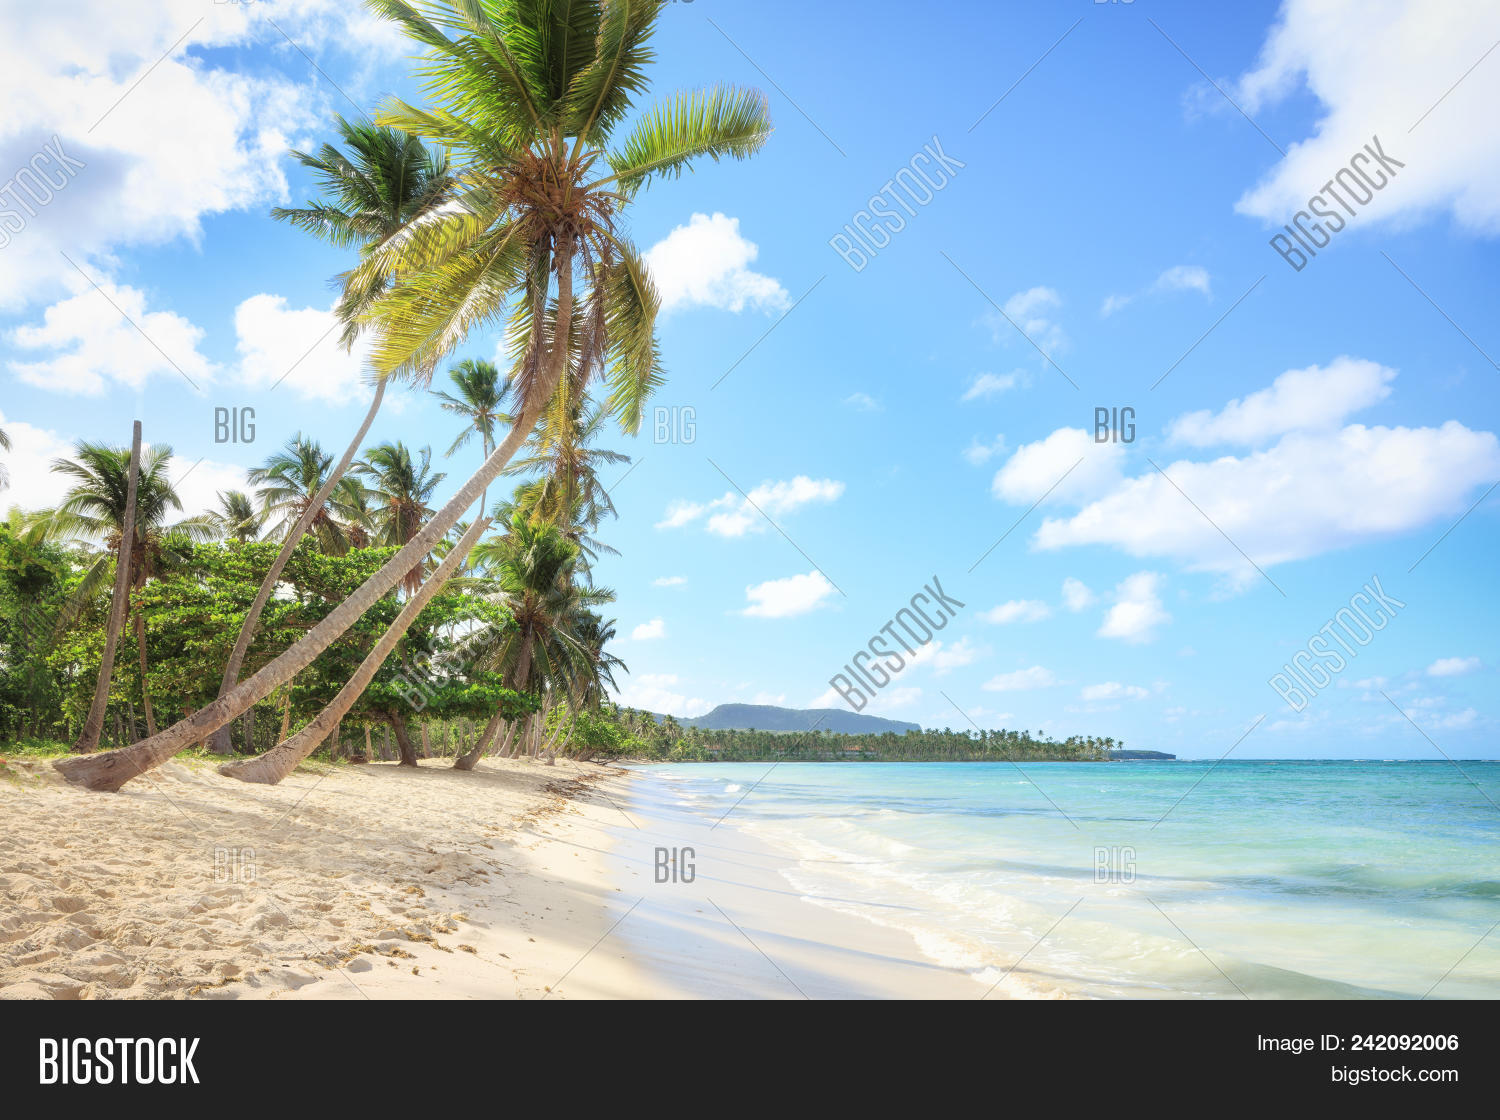 🔥 Panorama Of Secluded Beach Of, Las Galeras, Dominican Republic